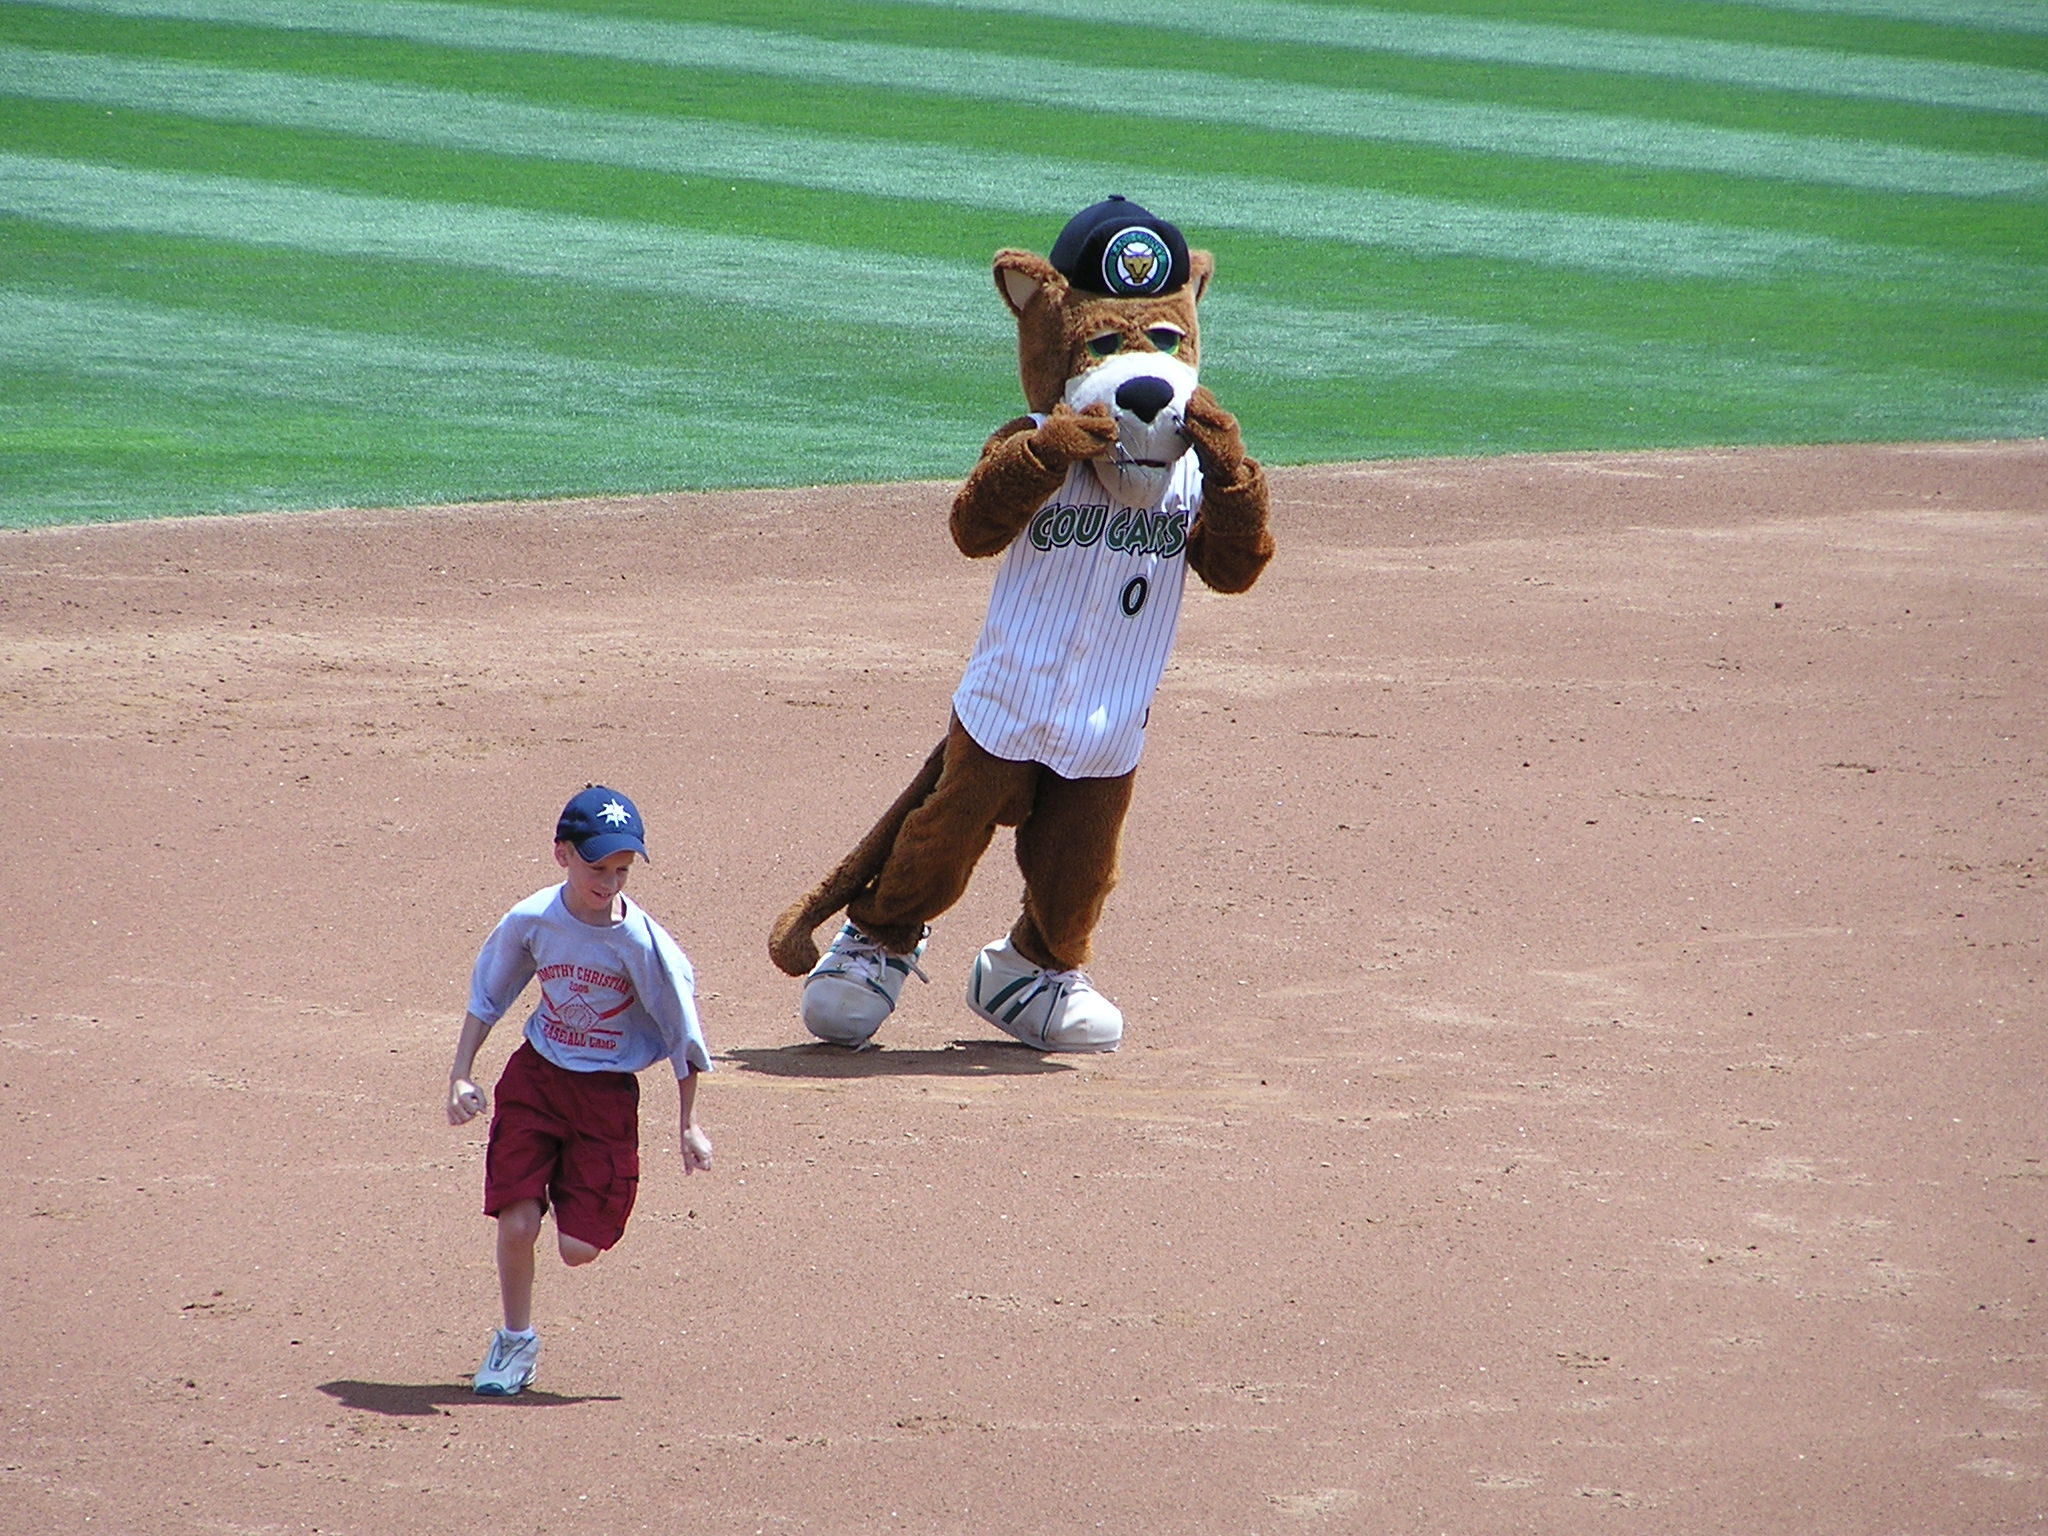 Ozzie losing another race, Kane County Cougars